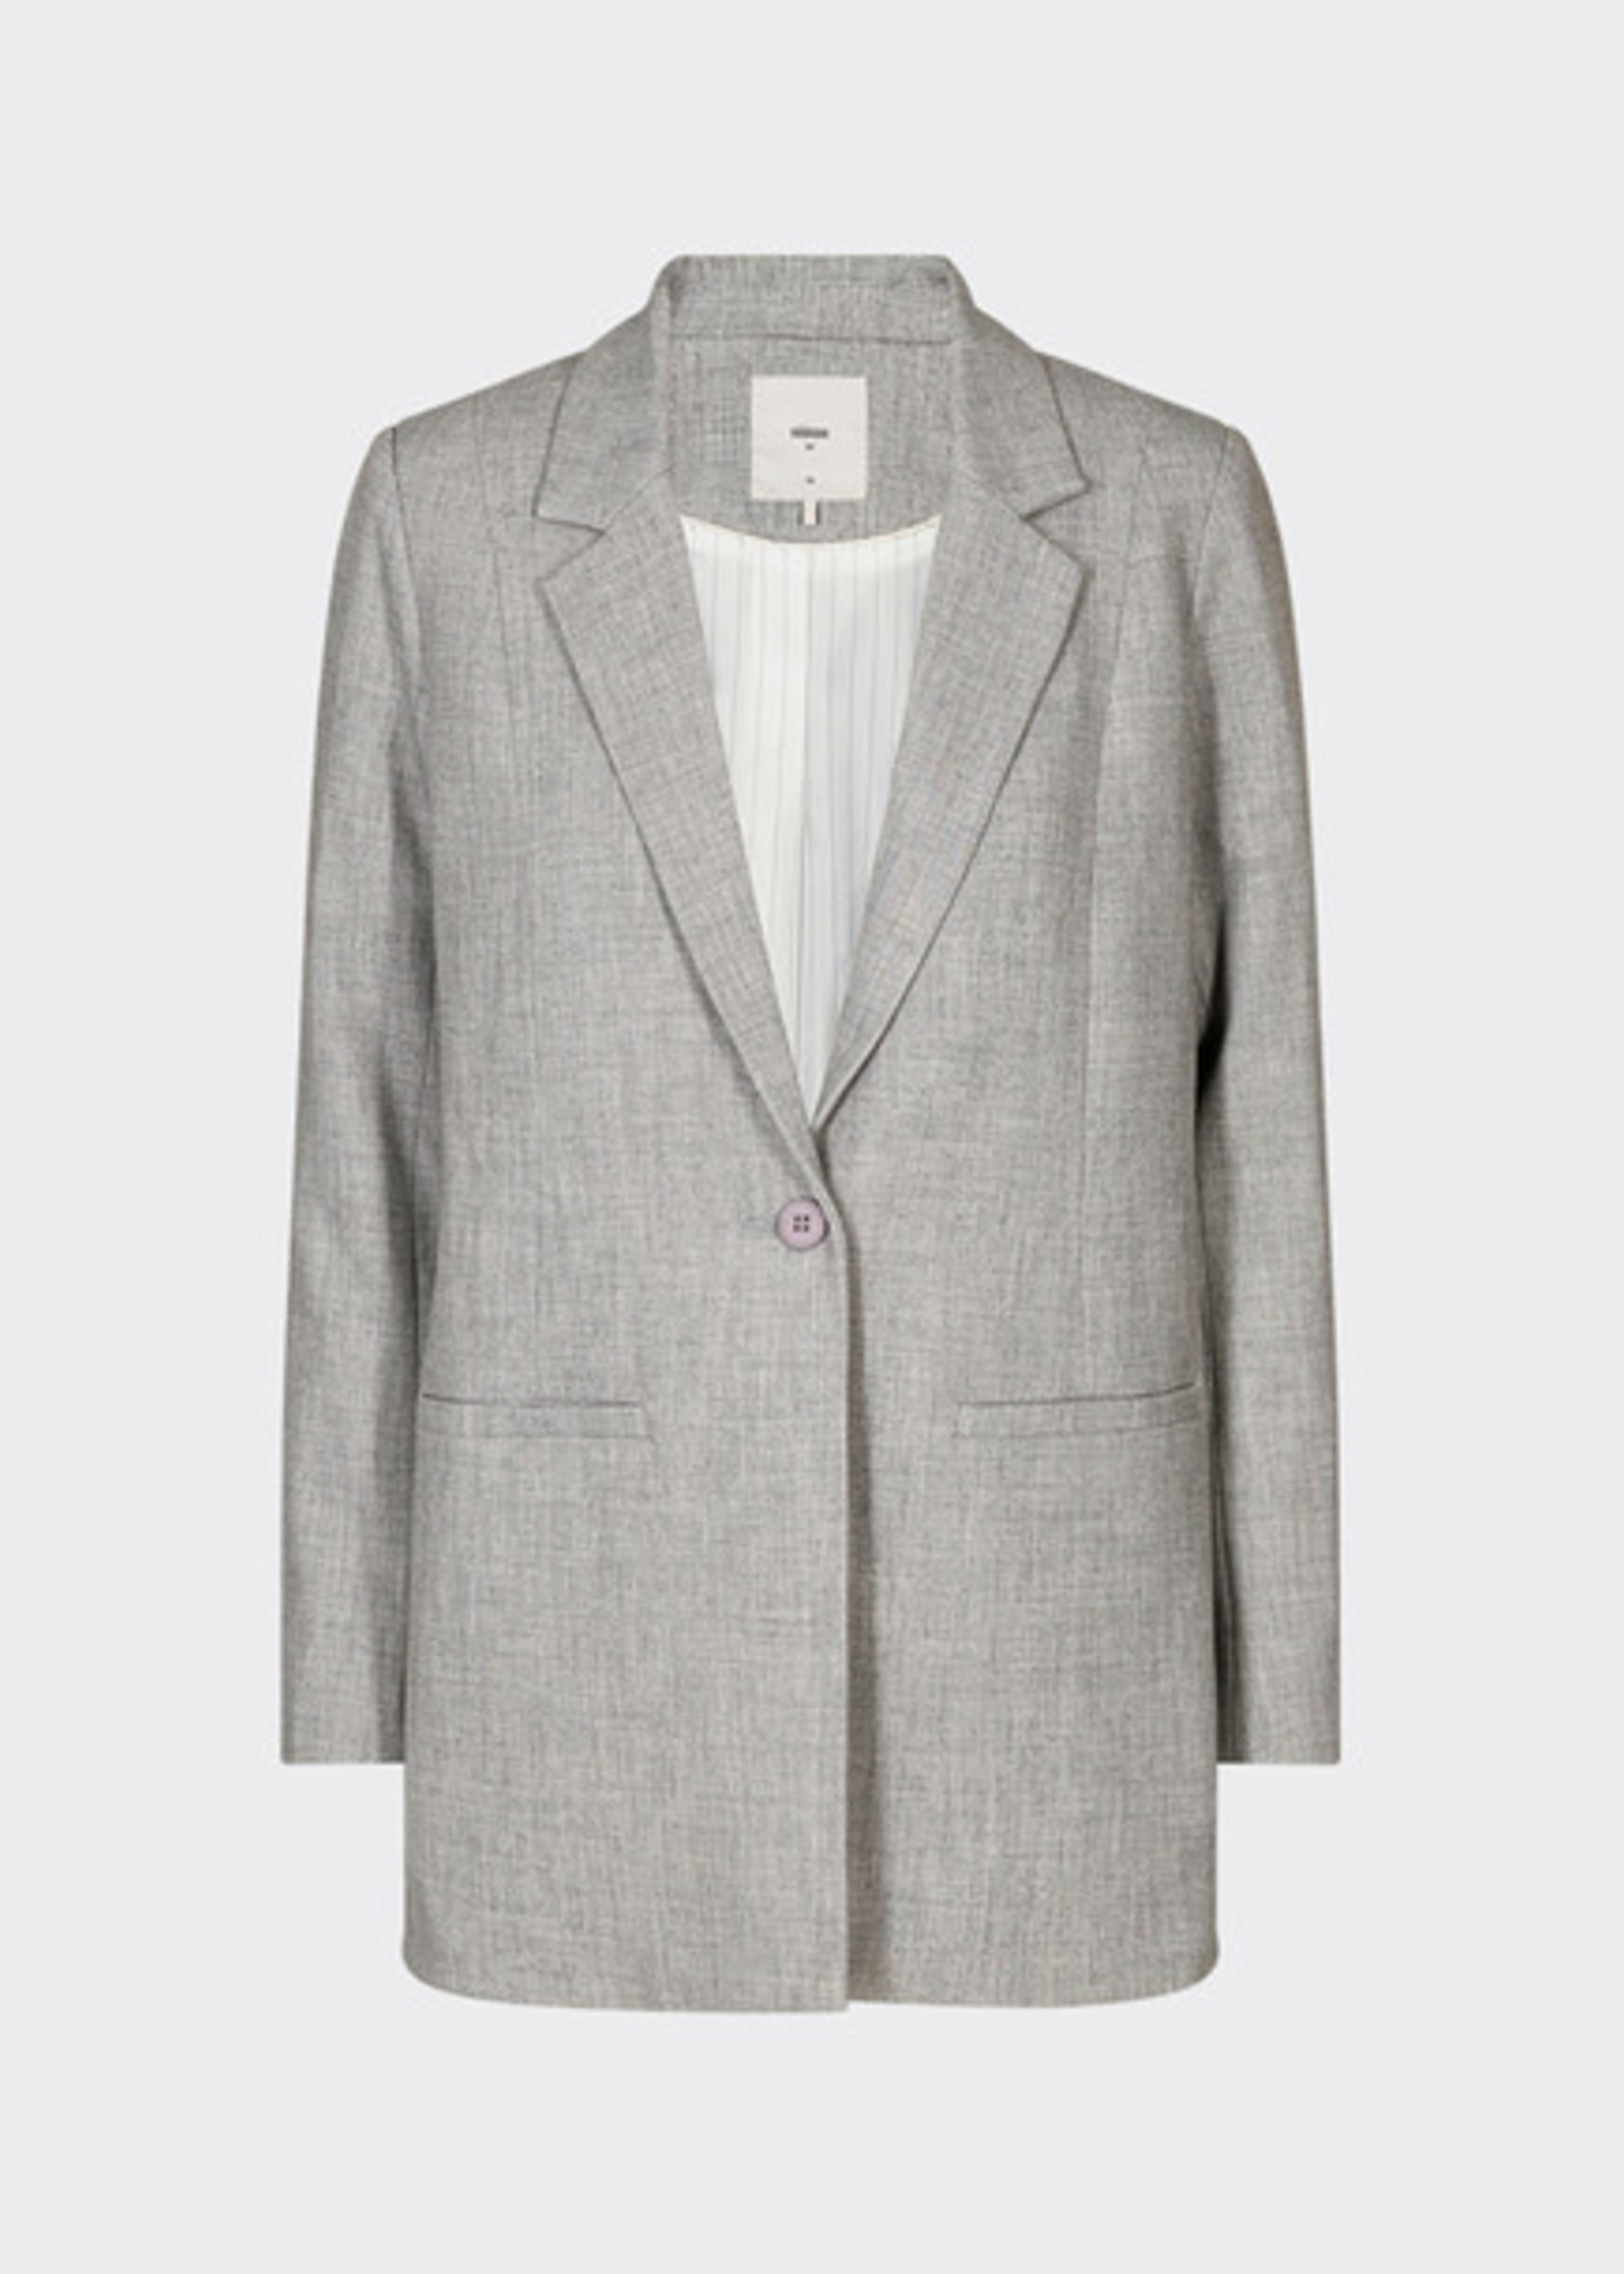 MINIMUM Minimum Tara Blazer